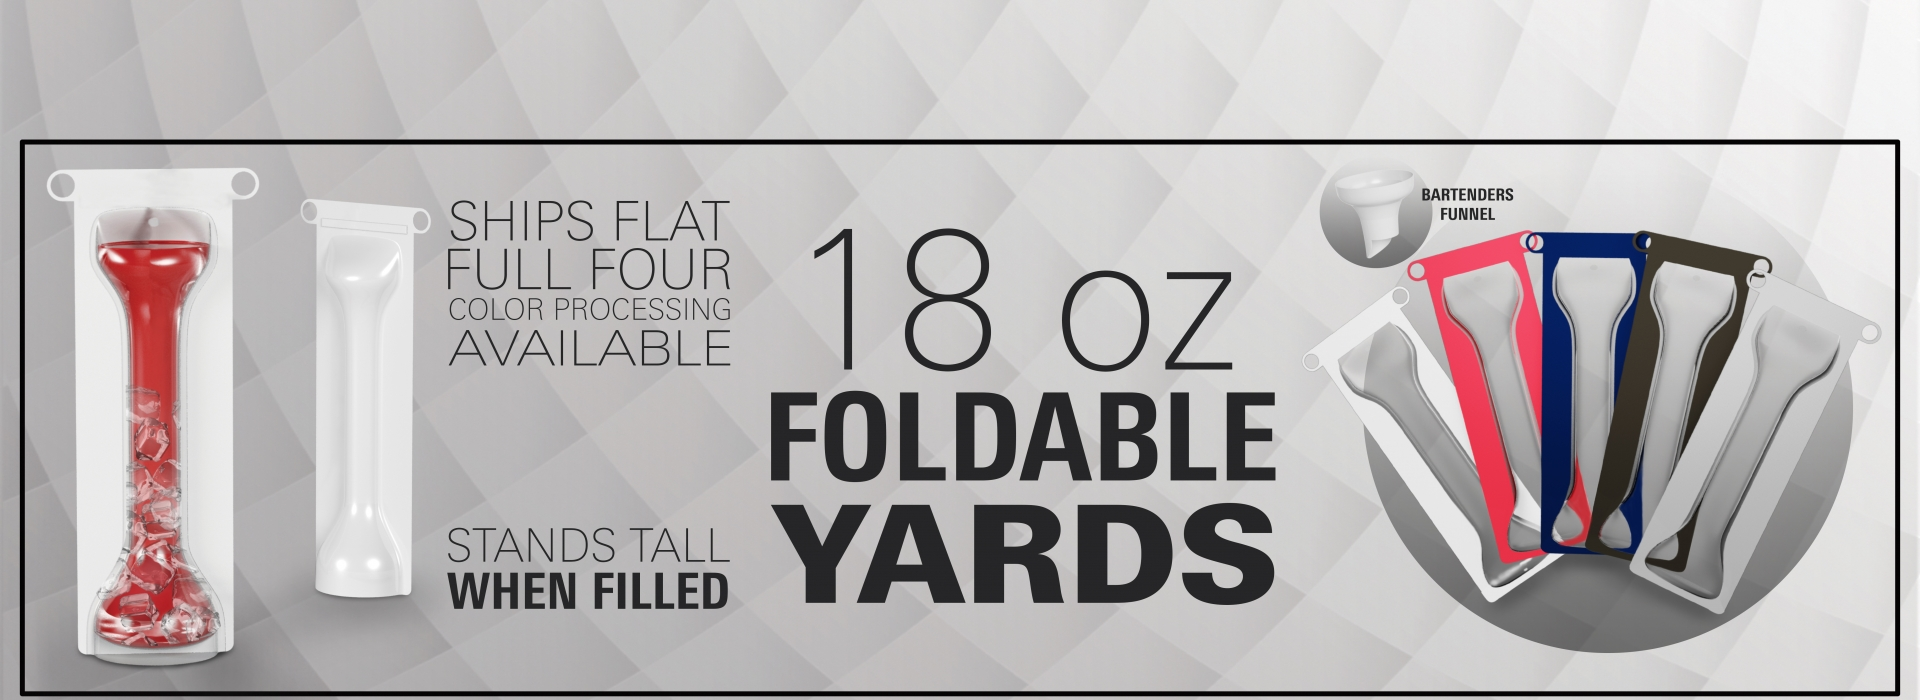 foldable yard